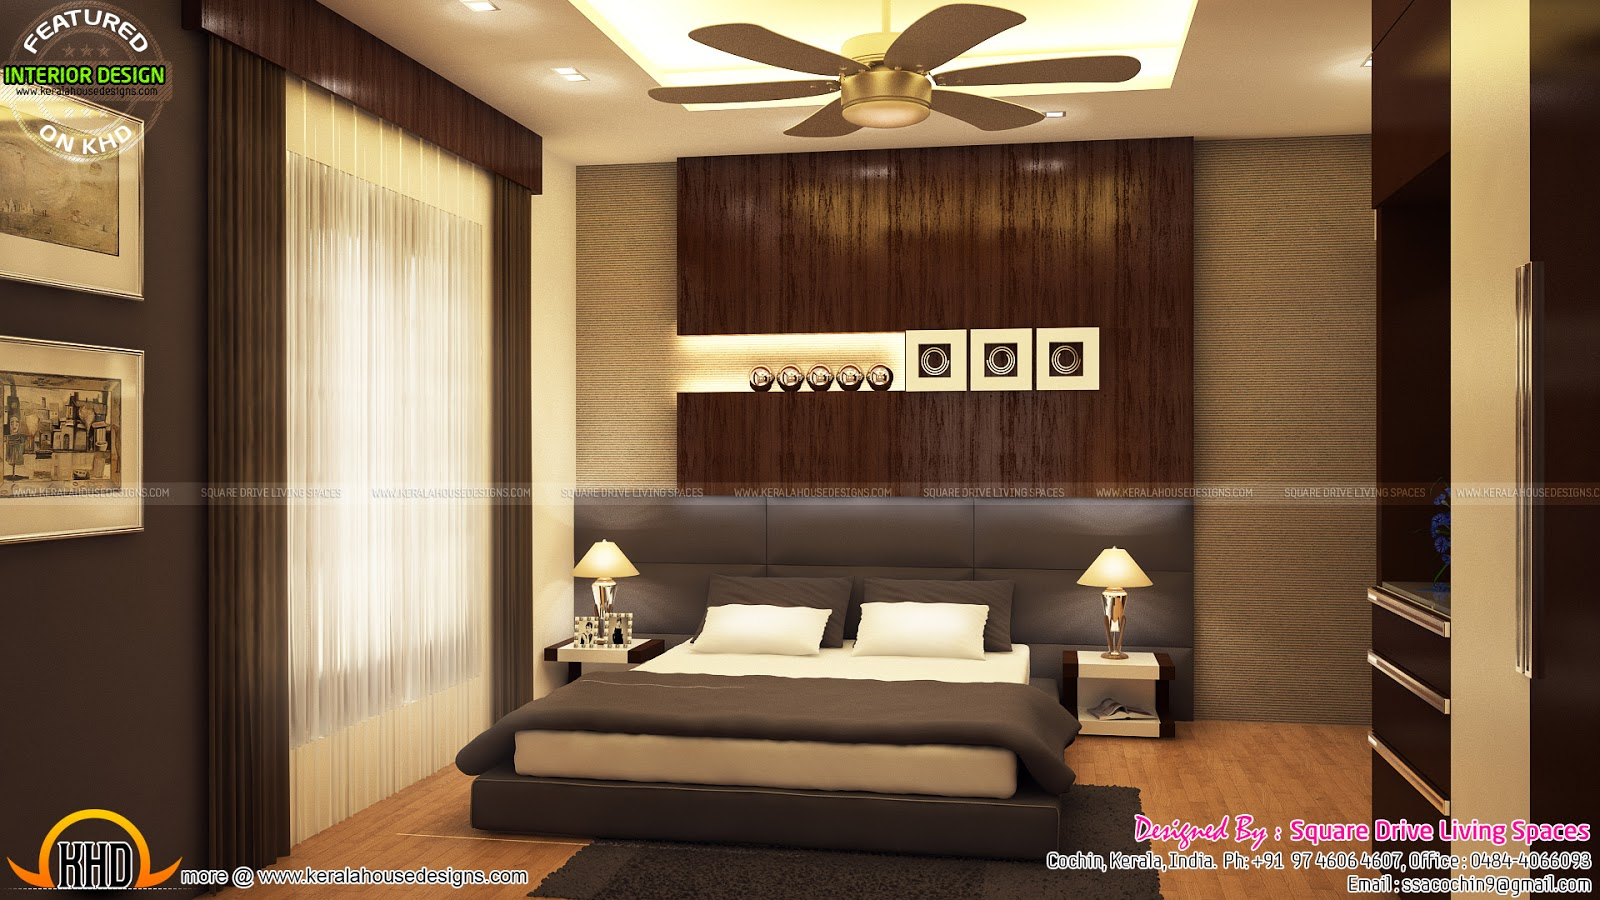 Interior designs of master bedroom living kitchen and for Master bedroom interior designs